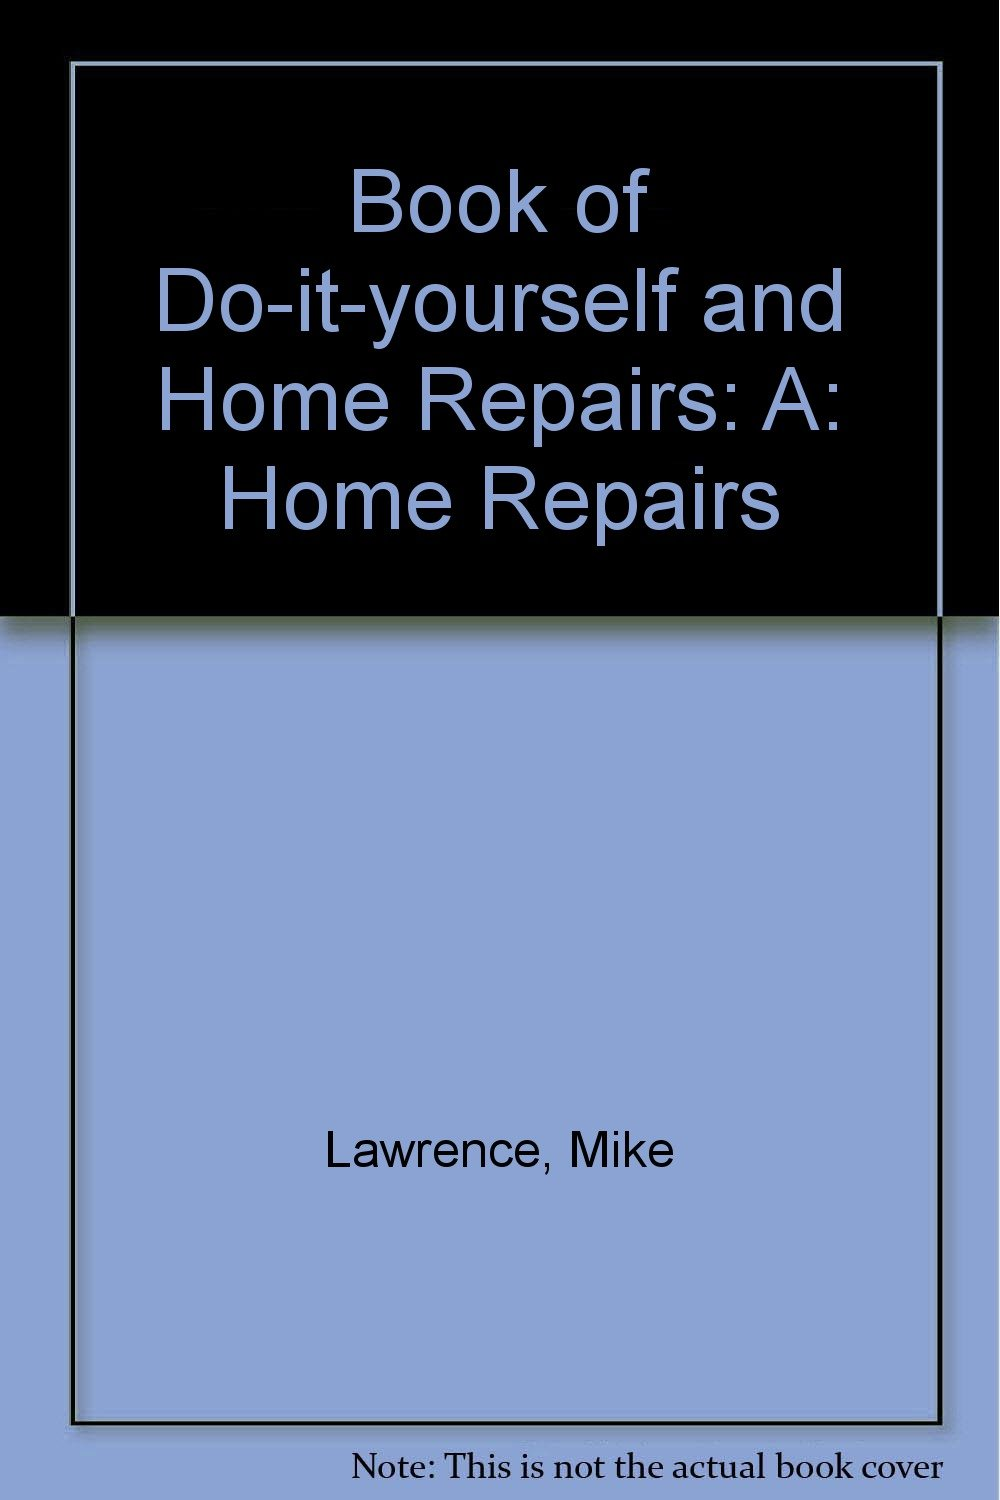 The complete book of diy a home repairs m lawrence the complete book of diy a home repairs m lawrence 9780356179483 amazon books solutioingenieria Image collections